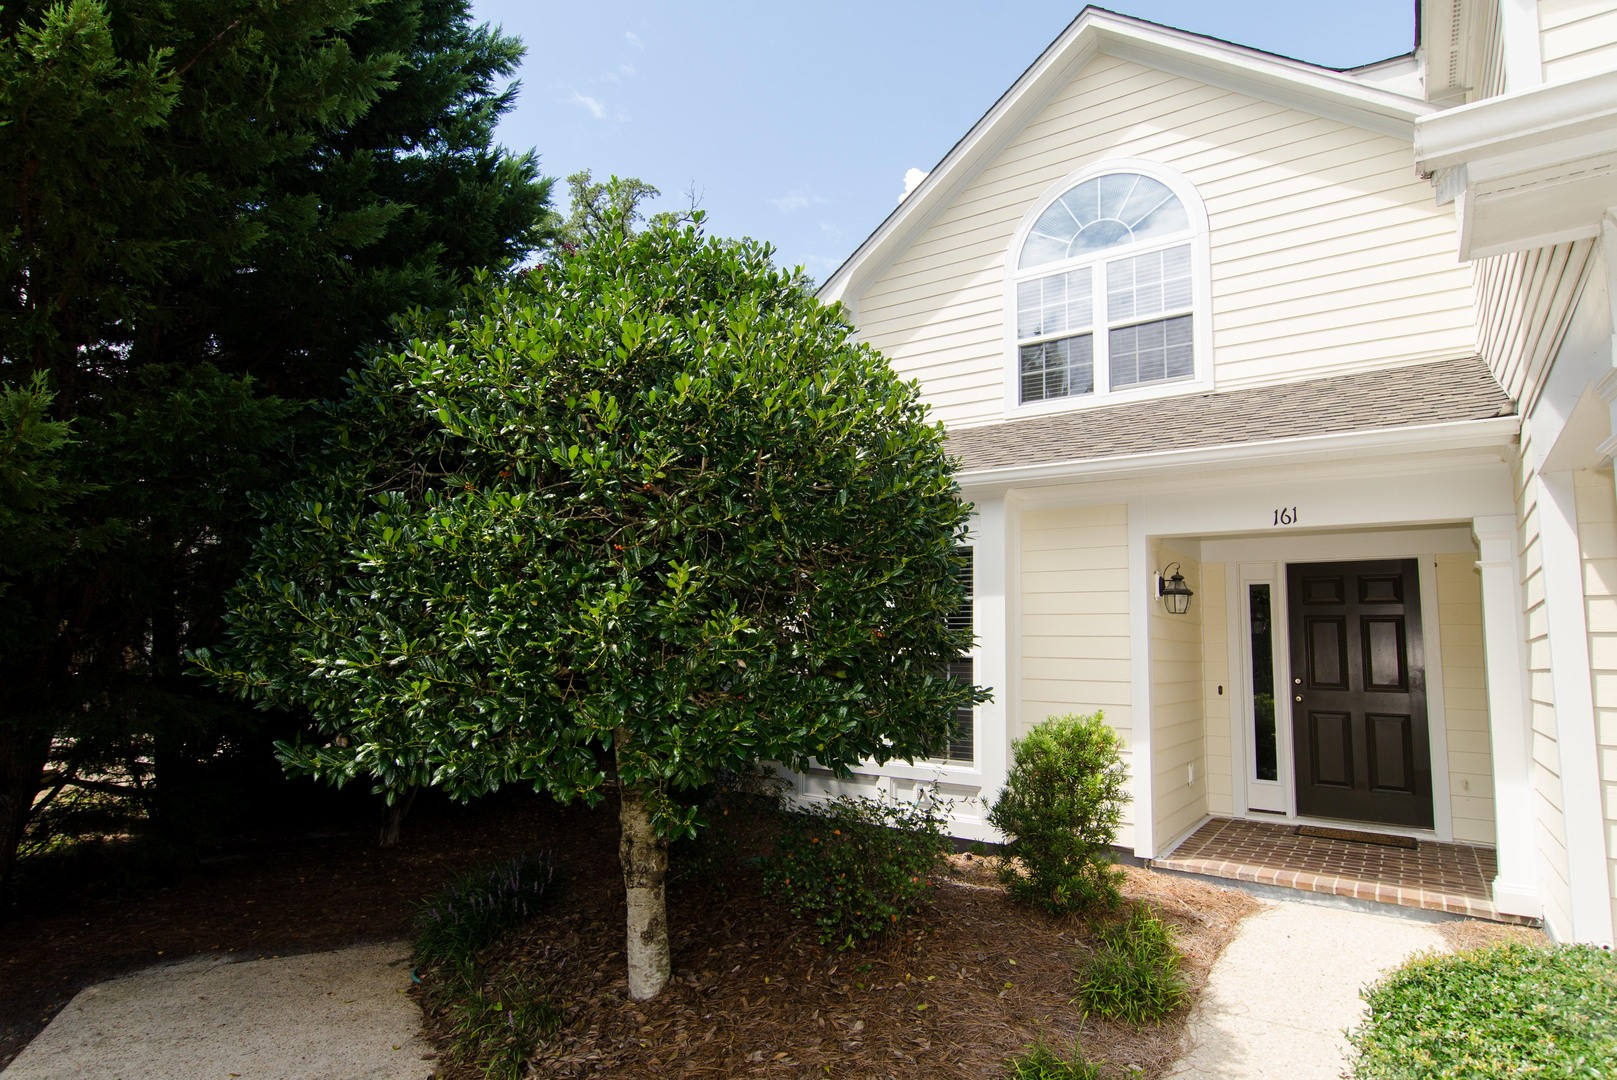 Home for rent in Wilmington, North Carolina, listed by Bryant Real Estate.